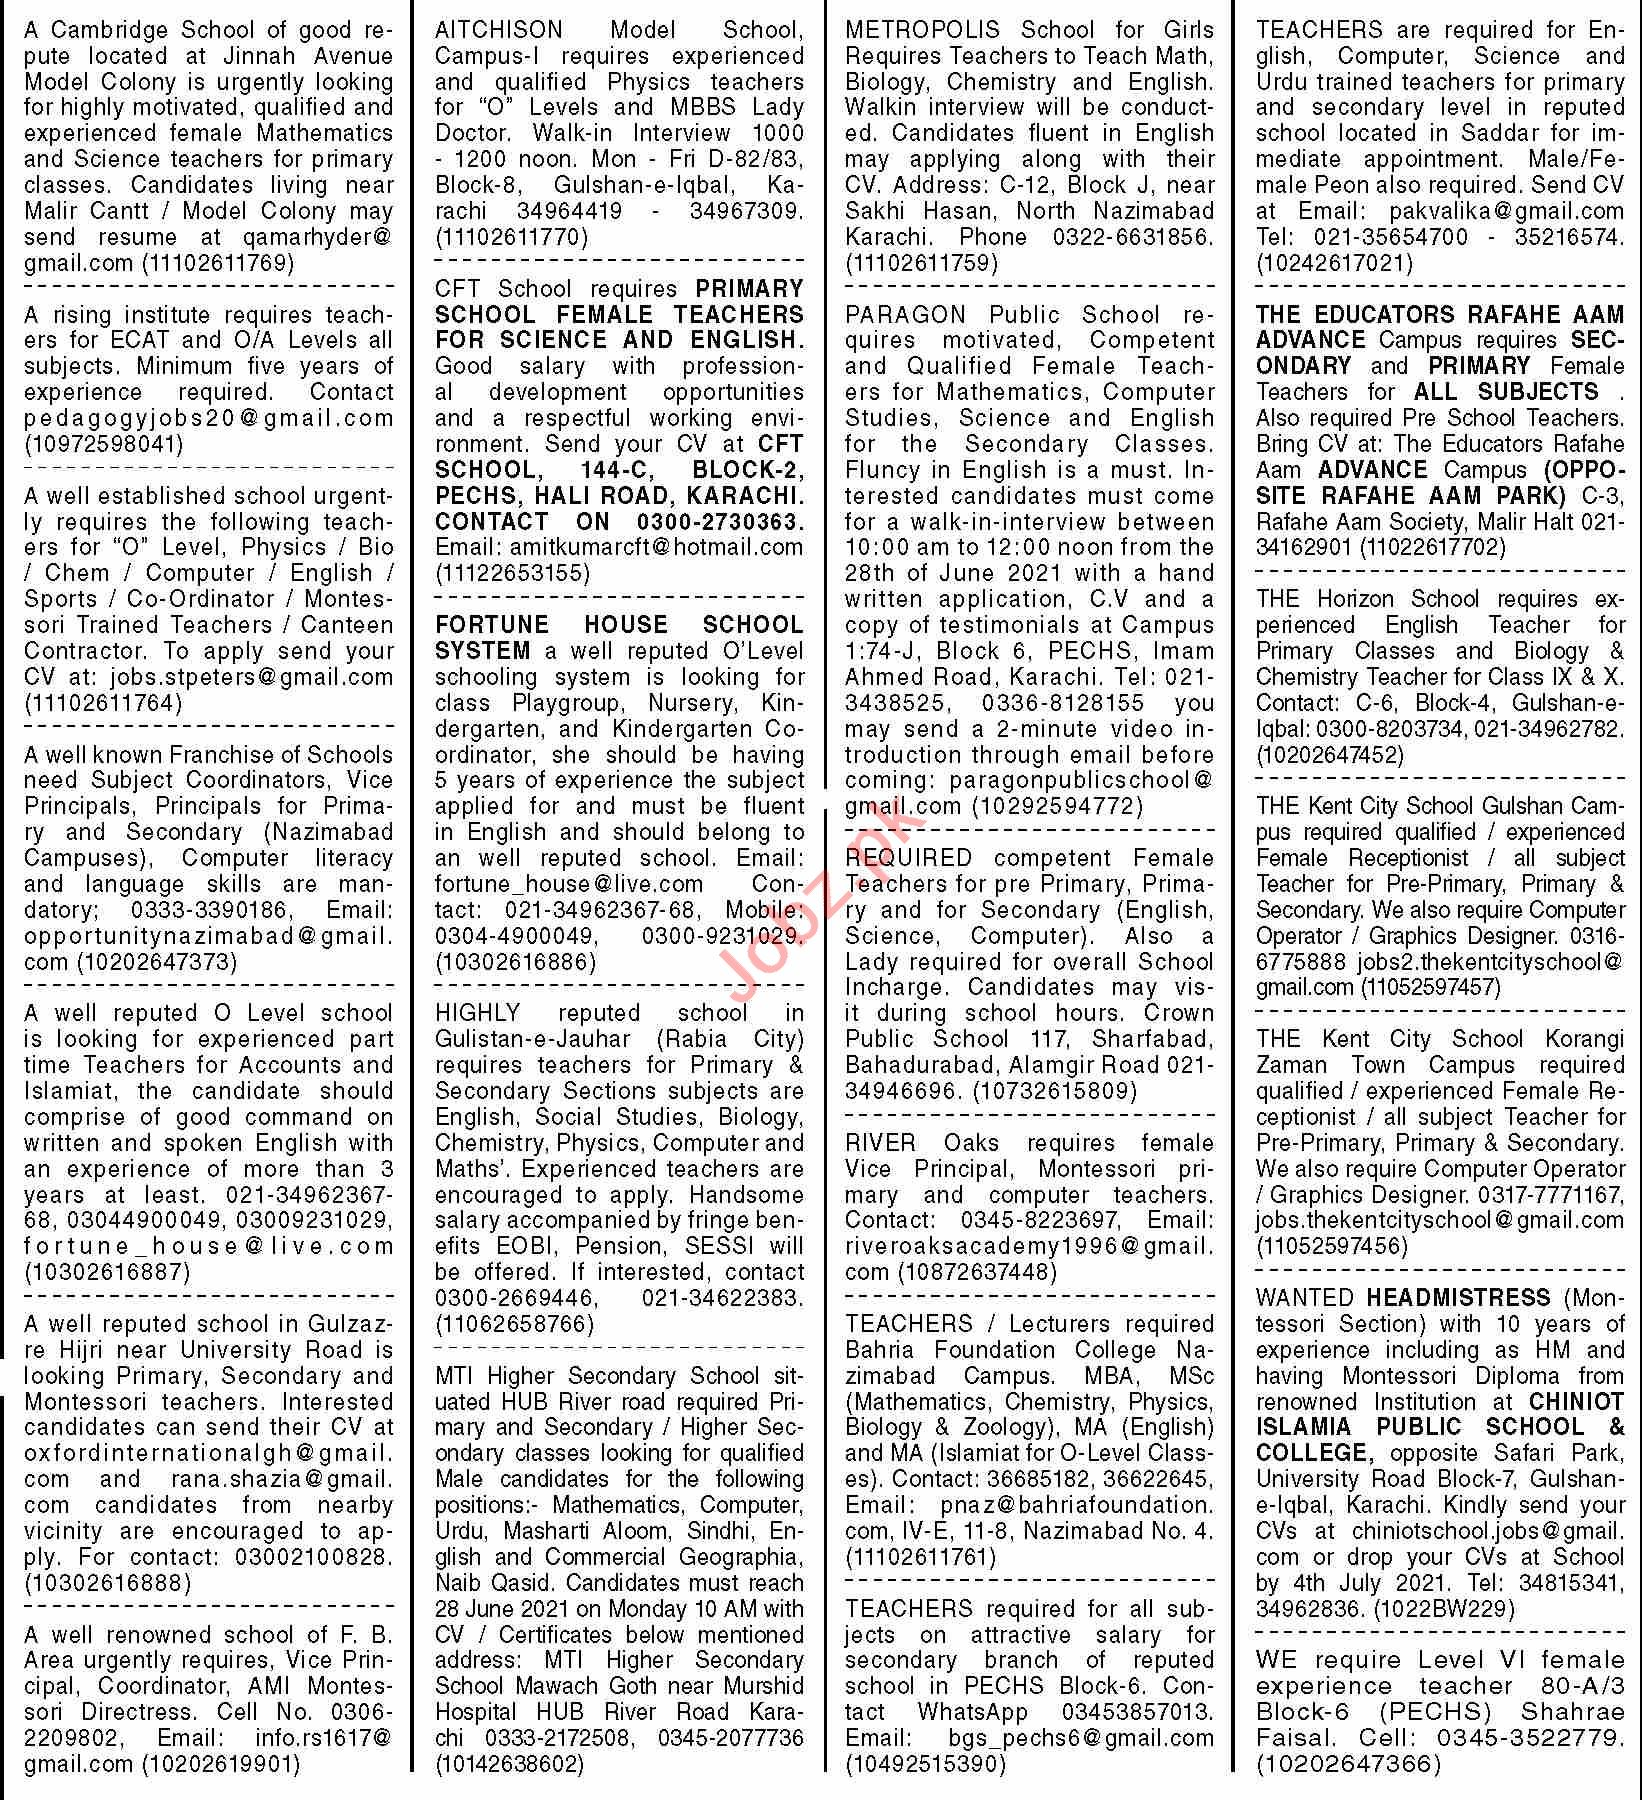 Dawn Sunday Classified Ads 27 June 2021 for Teaching Staff